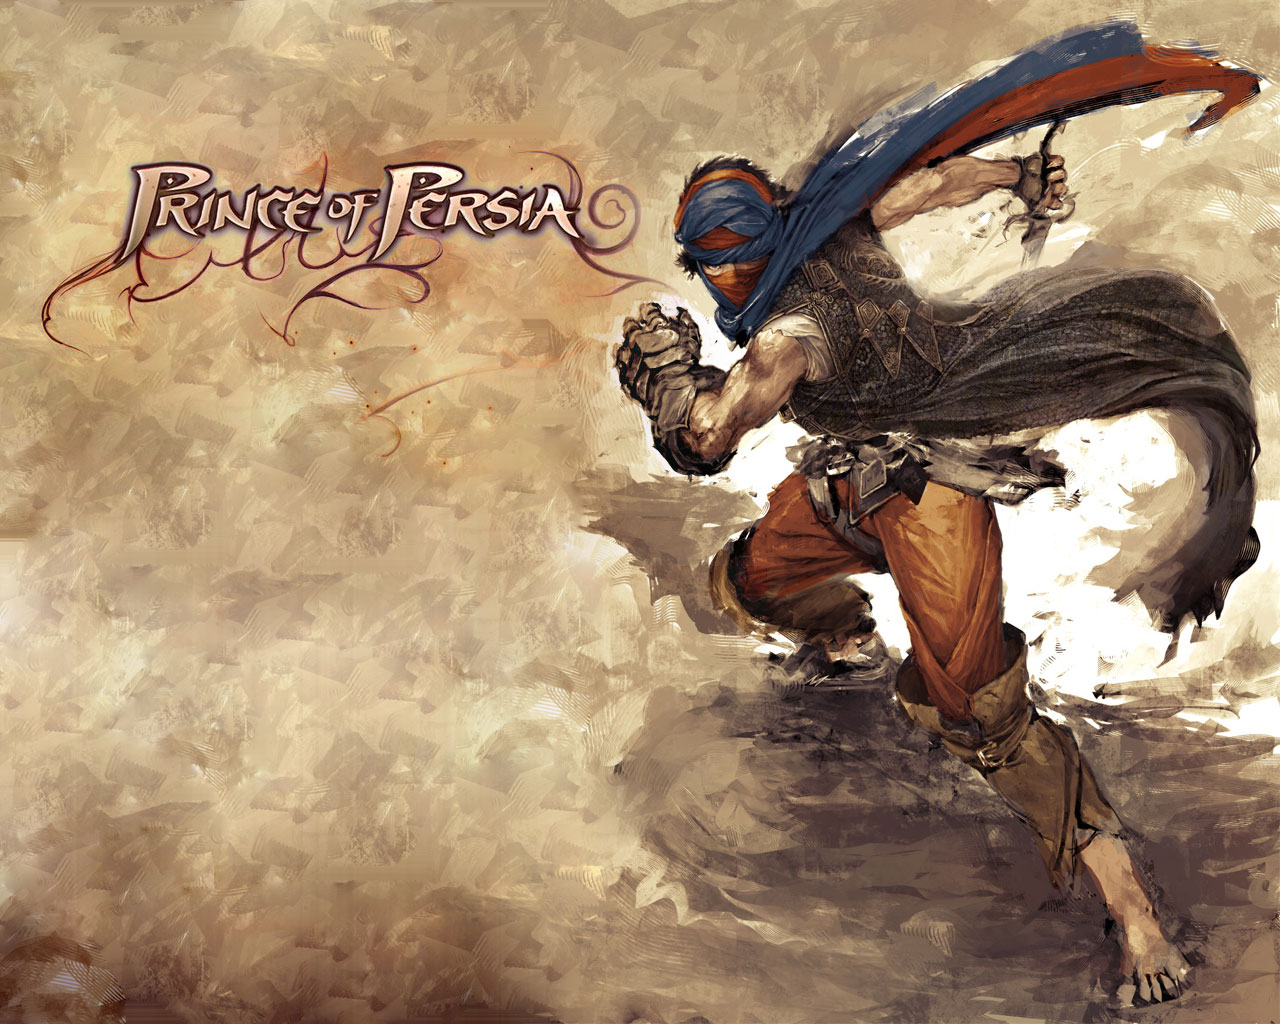 photos prince of persia prince of persia 1 games